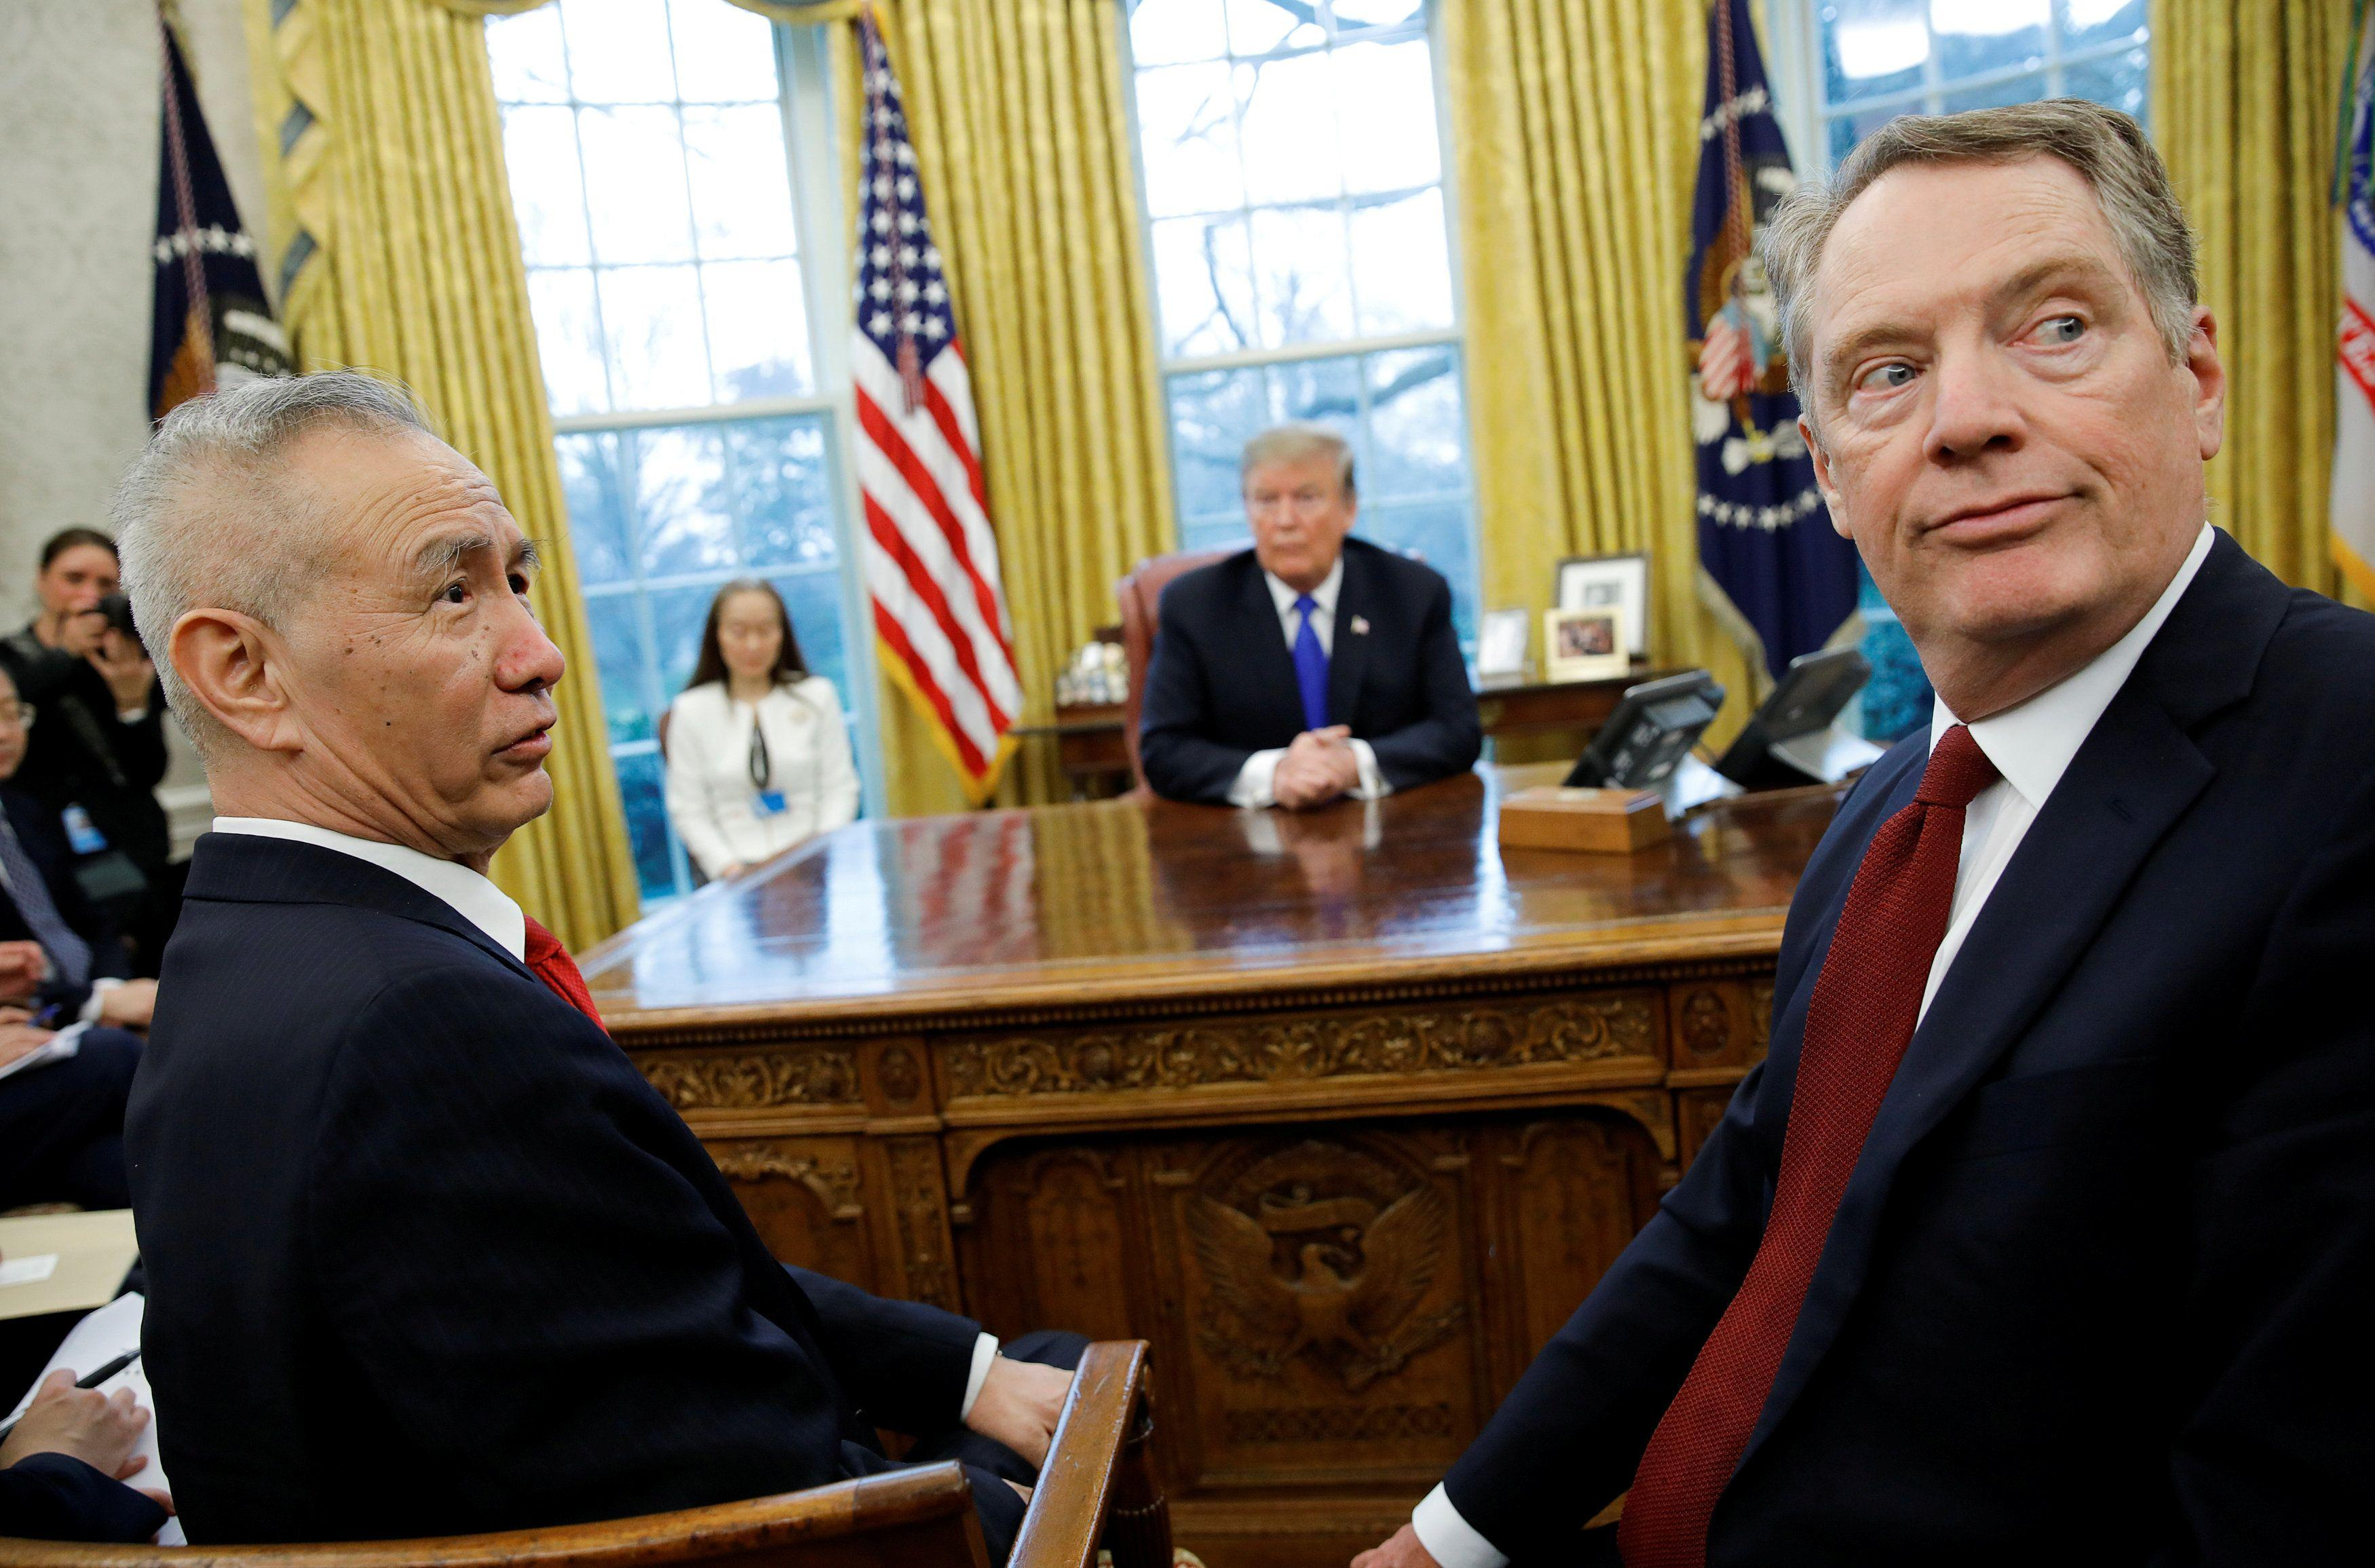 Lighthizer testifies before Congress on trade with China